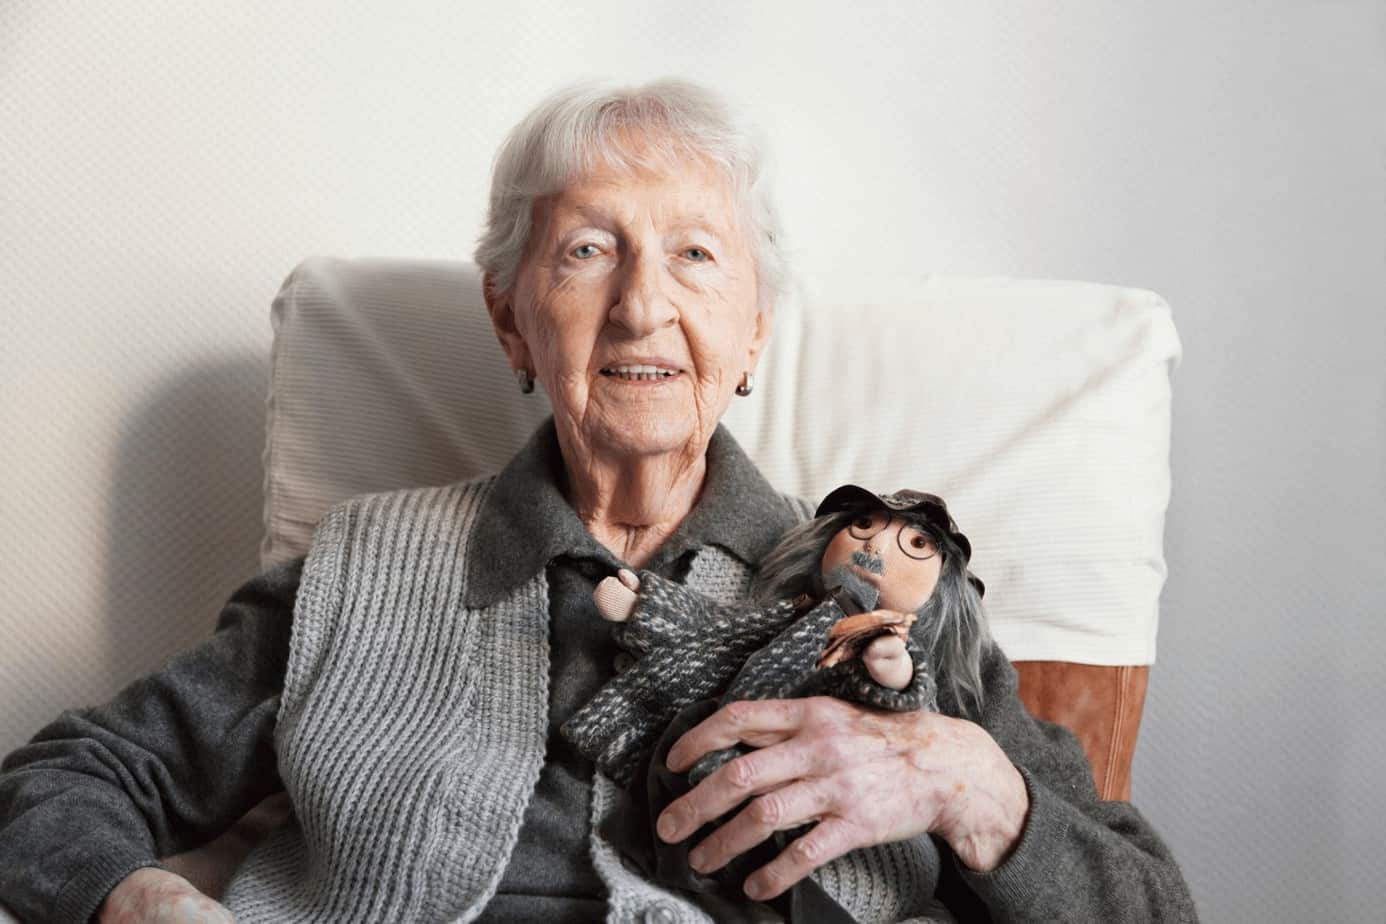 old woman holding a doll